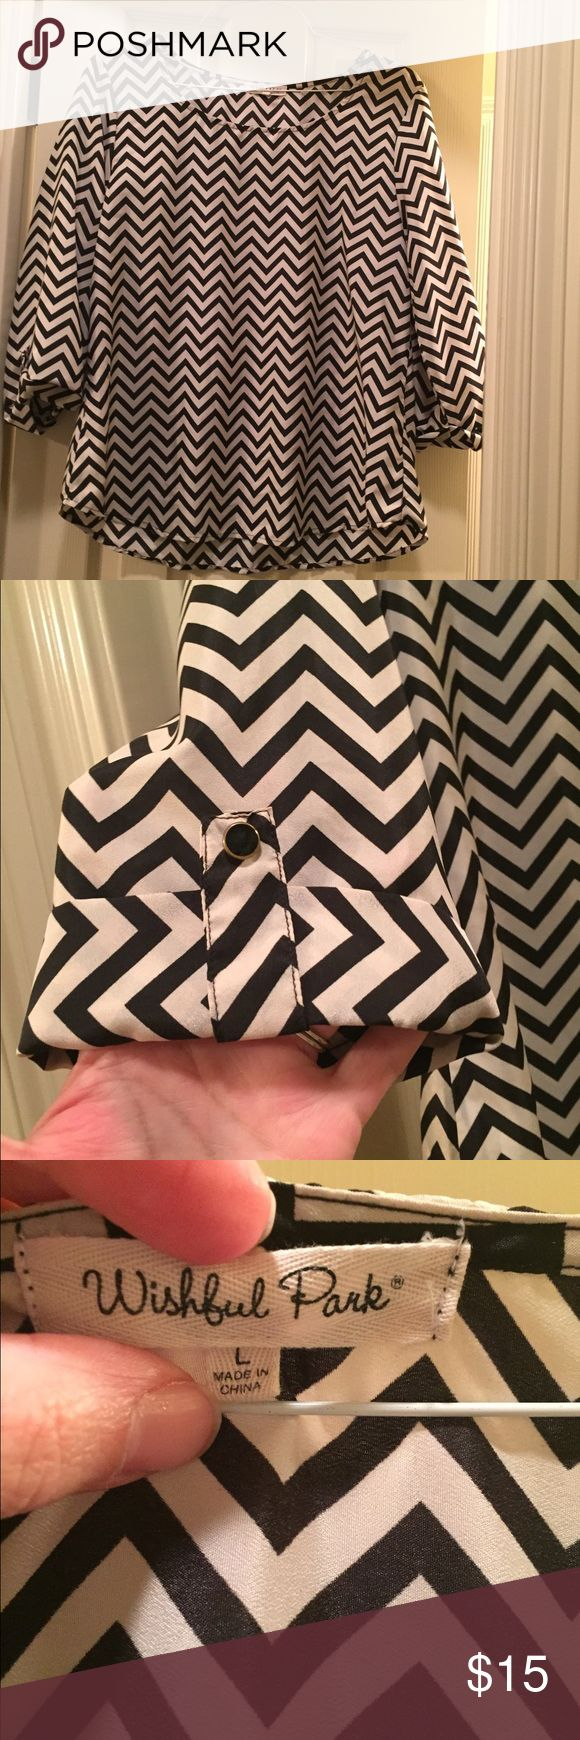 Cute chevron top Excellent used condition. Worn handful of times. Black and ivory. wishful park Tops Blouses